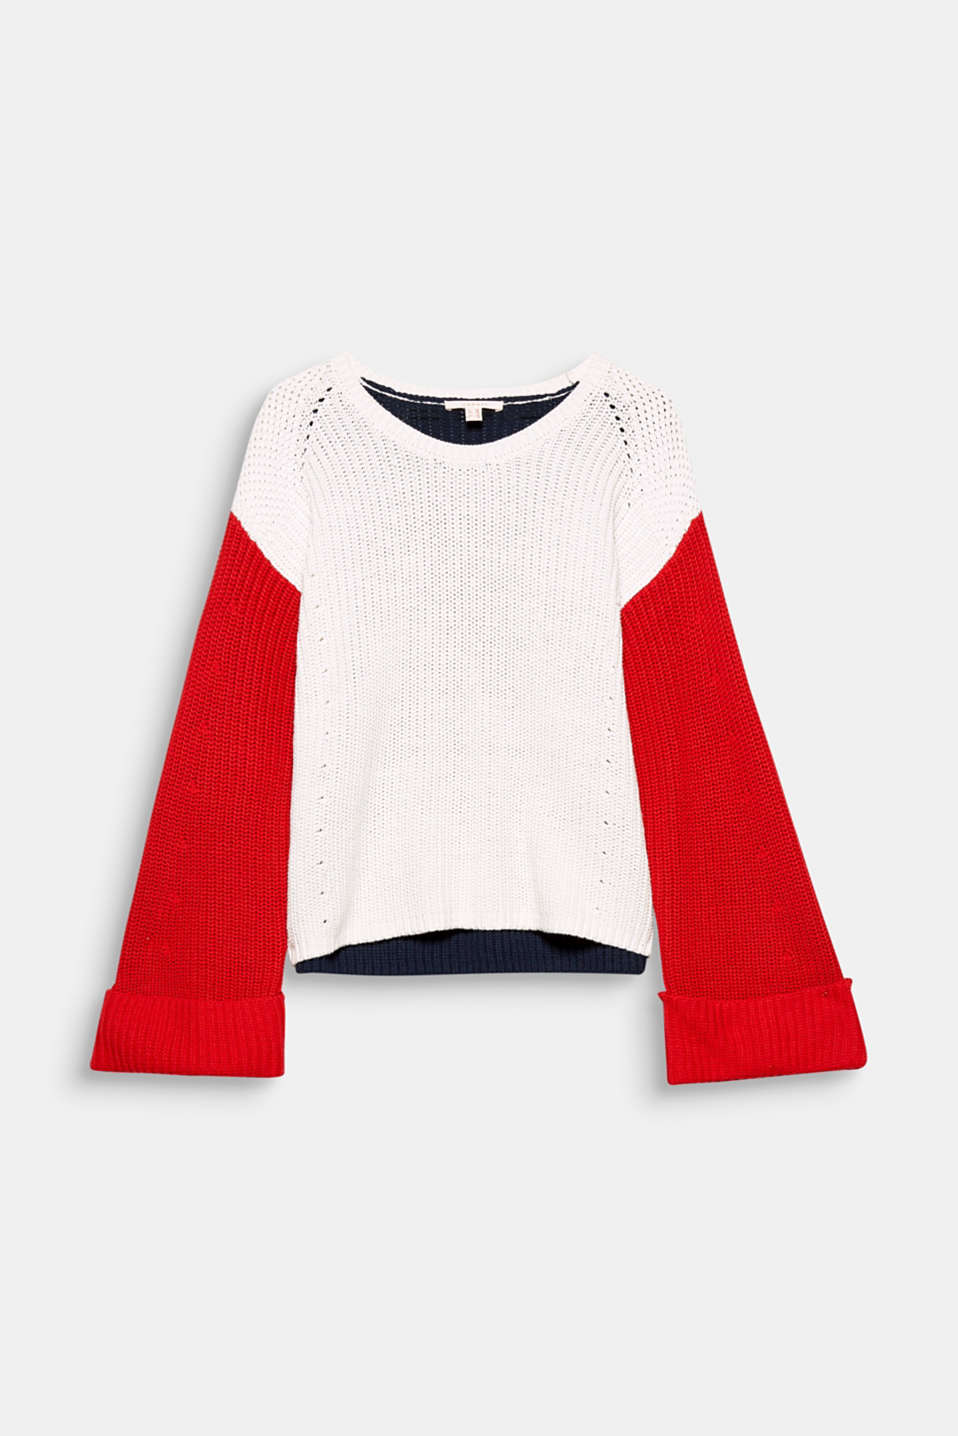 With its stylish cut and trendy colour blocking, this boxy, short jumper with trumpet sleeves will be a new favourite!